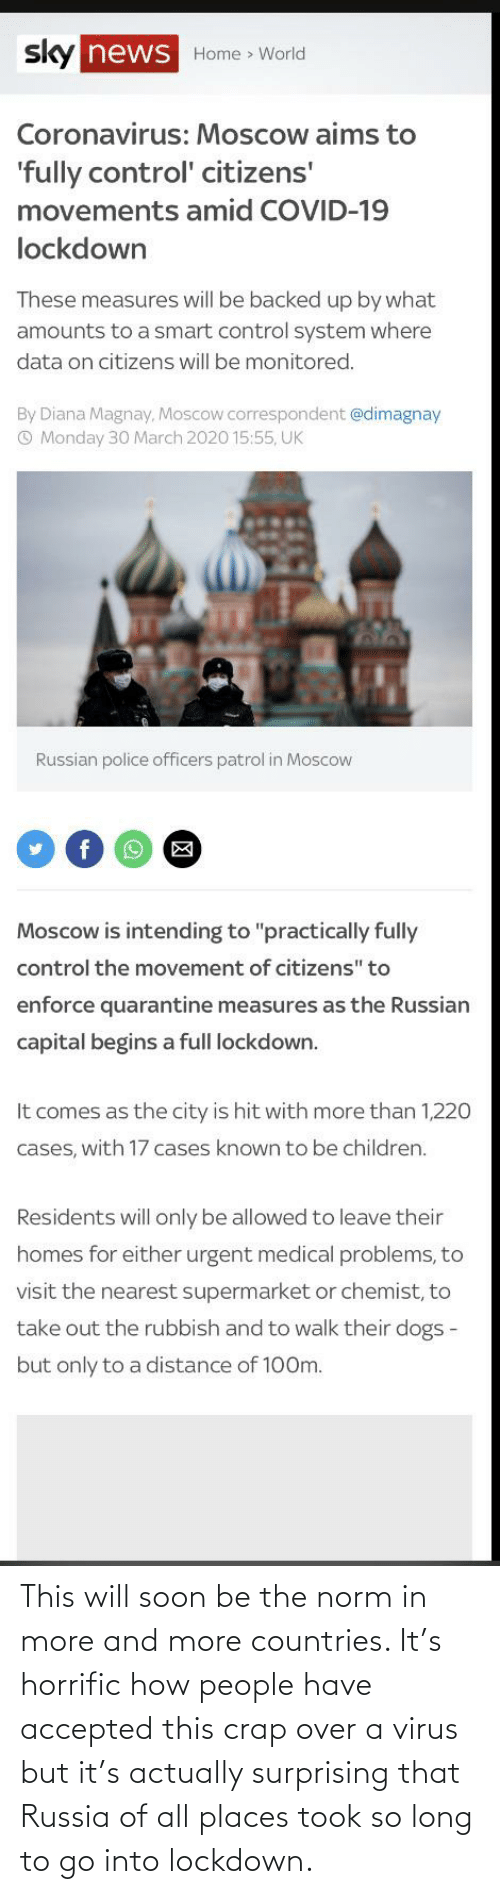 crap: This will soon be the norm in more and more countries. It's horrific how people have accepted this crap over a virus but it's actually surprising that Russia of all places took so long to go into lockdown.